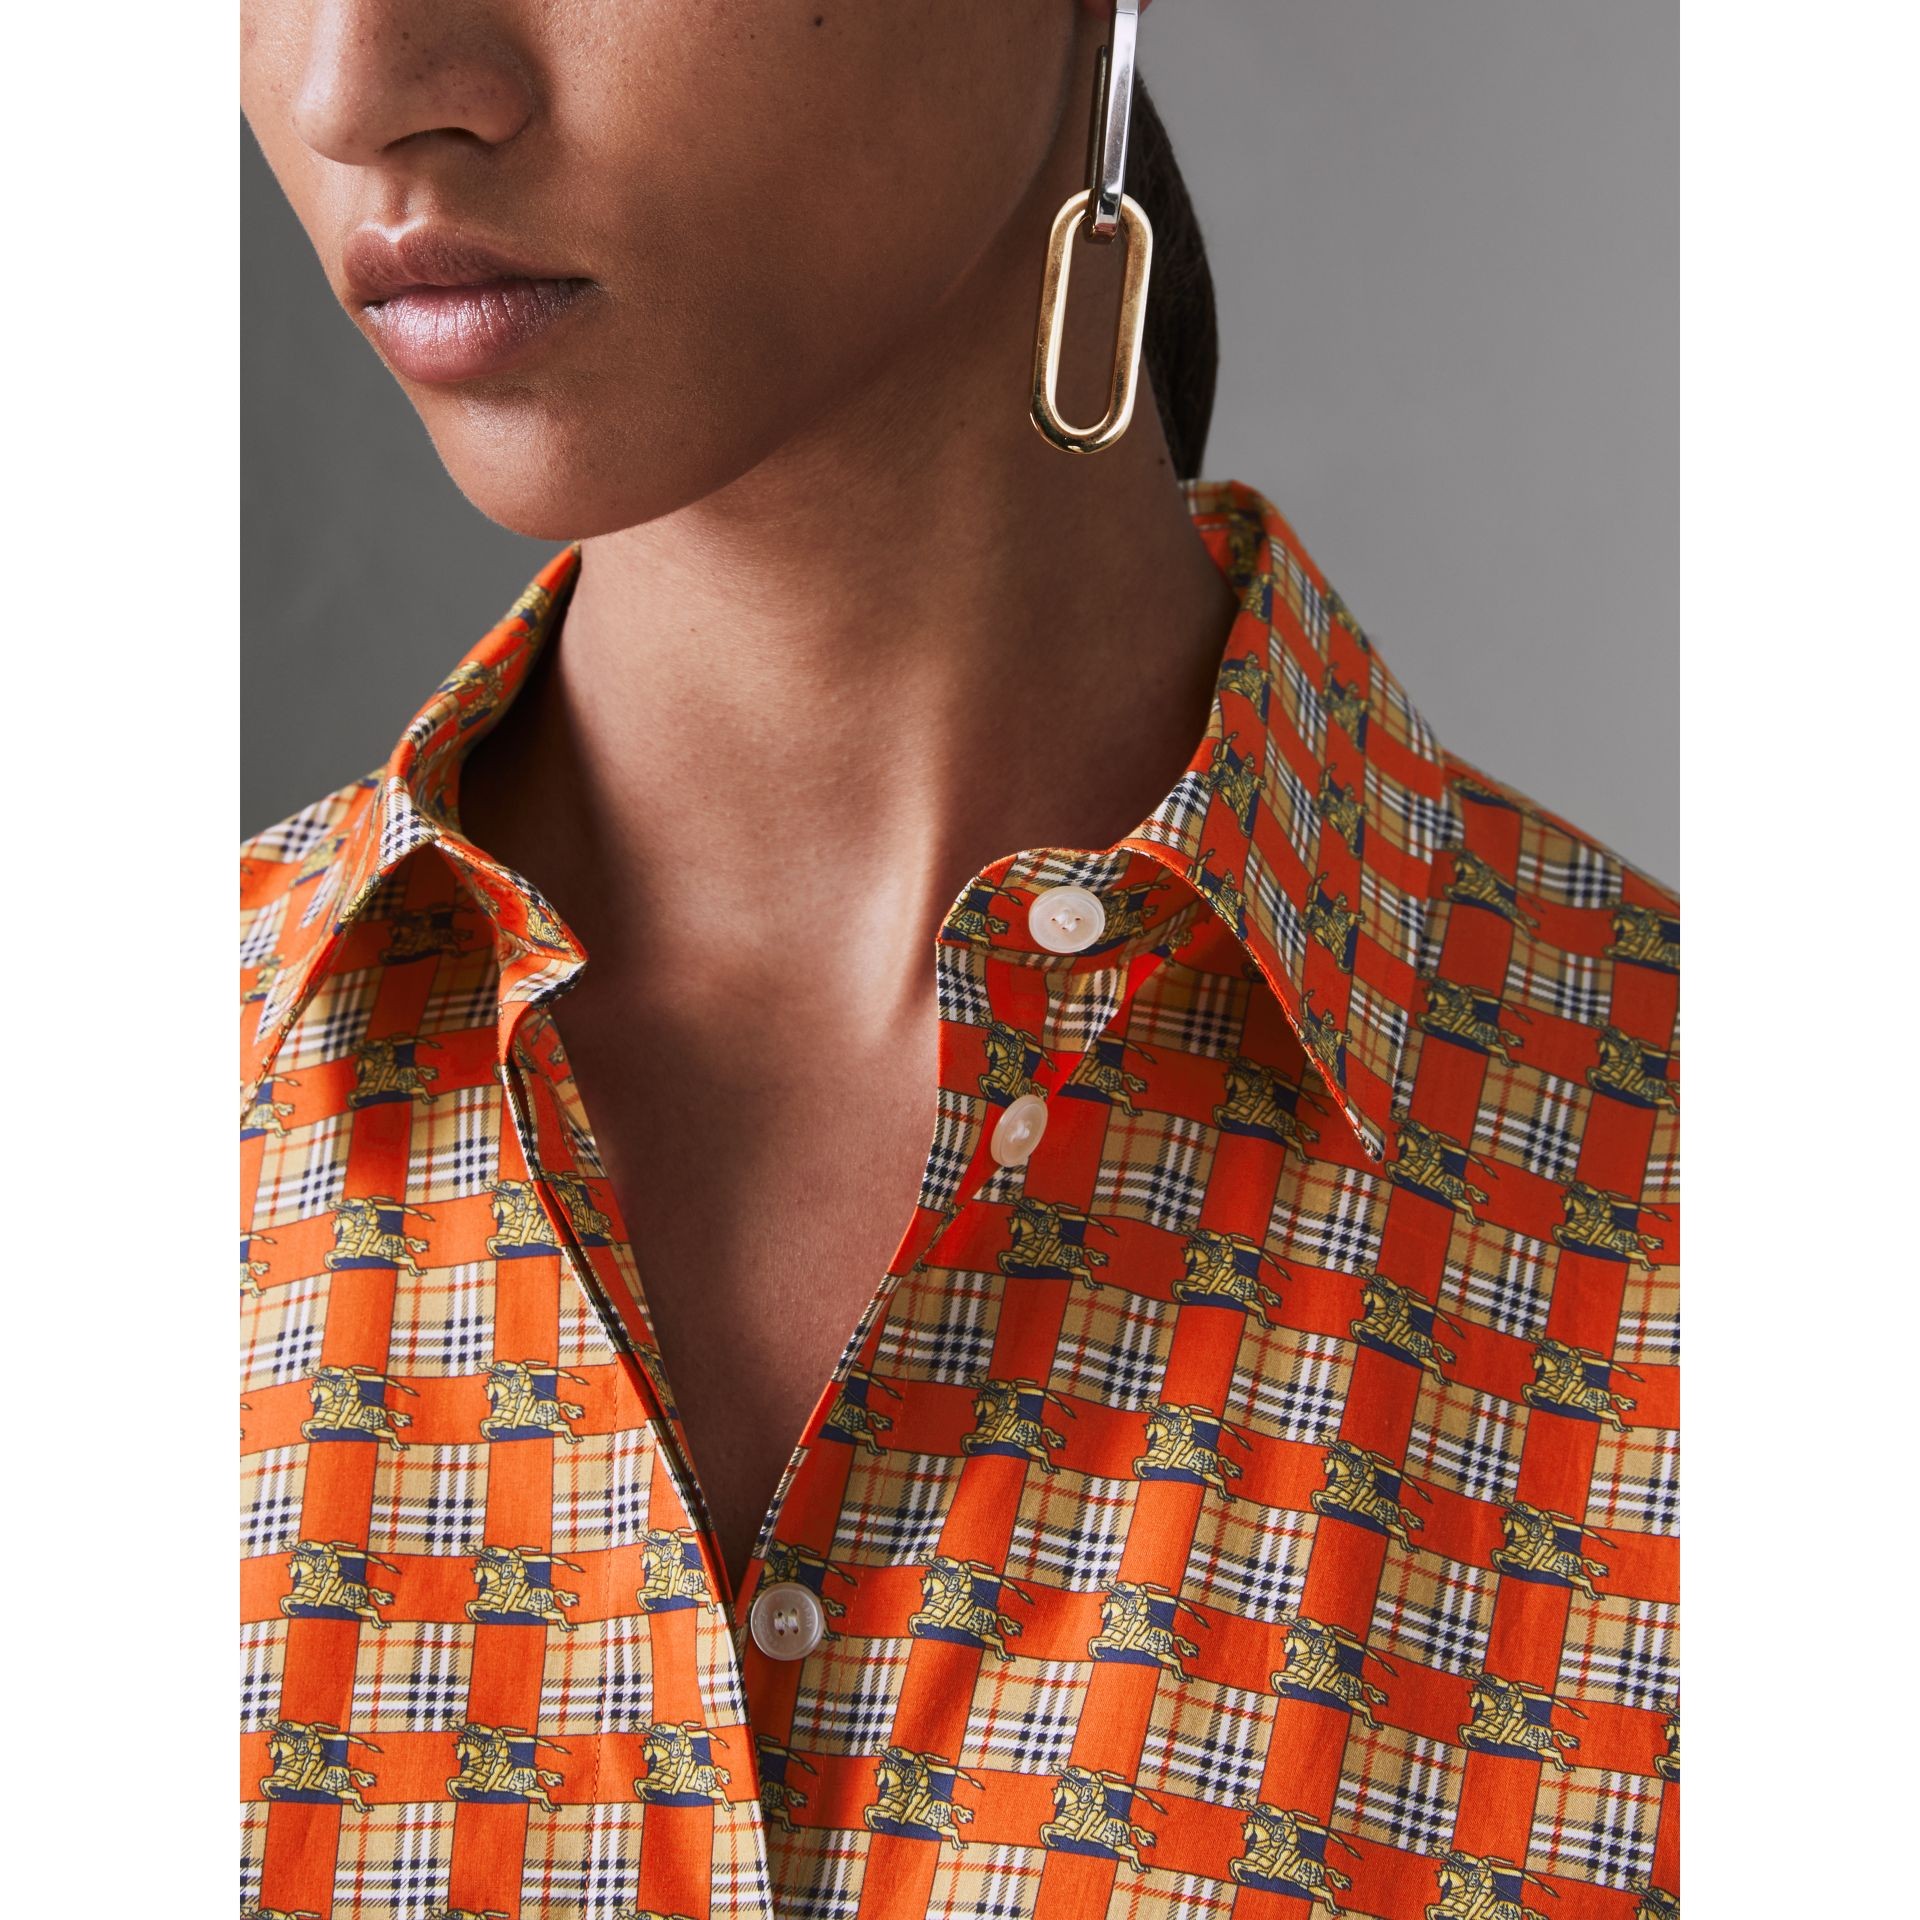 Tiled Archive Print Cotton Shirt in Bright Red - Women | Burberry - gallery image 1